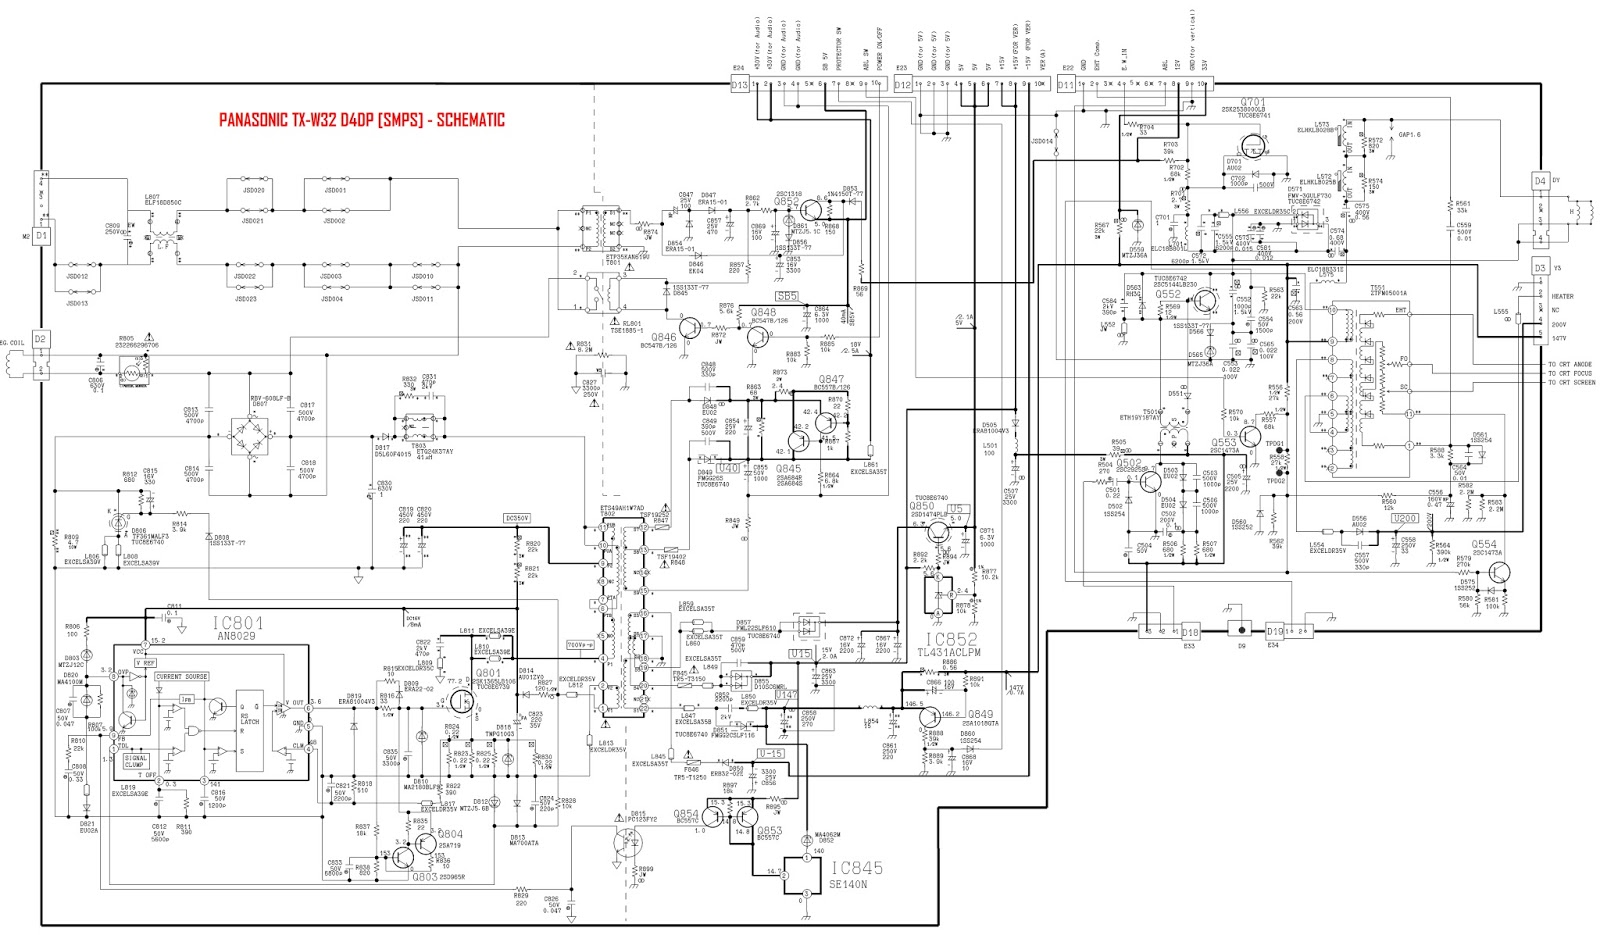 Panasonic Schematic Diagram Trusted Wiring Online Jvc K Series Circuit